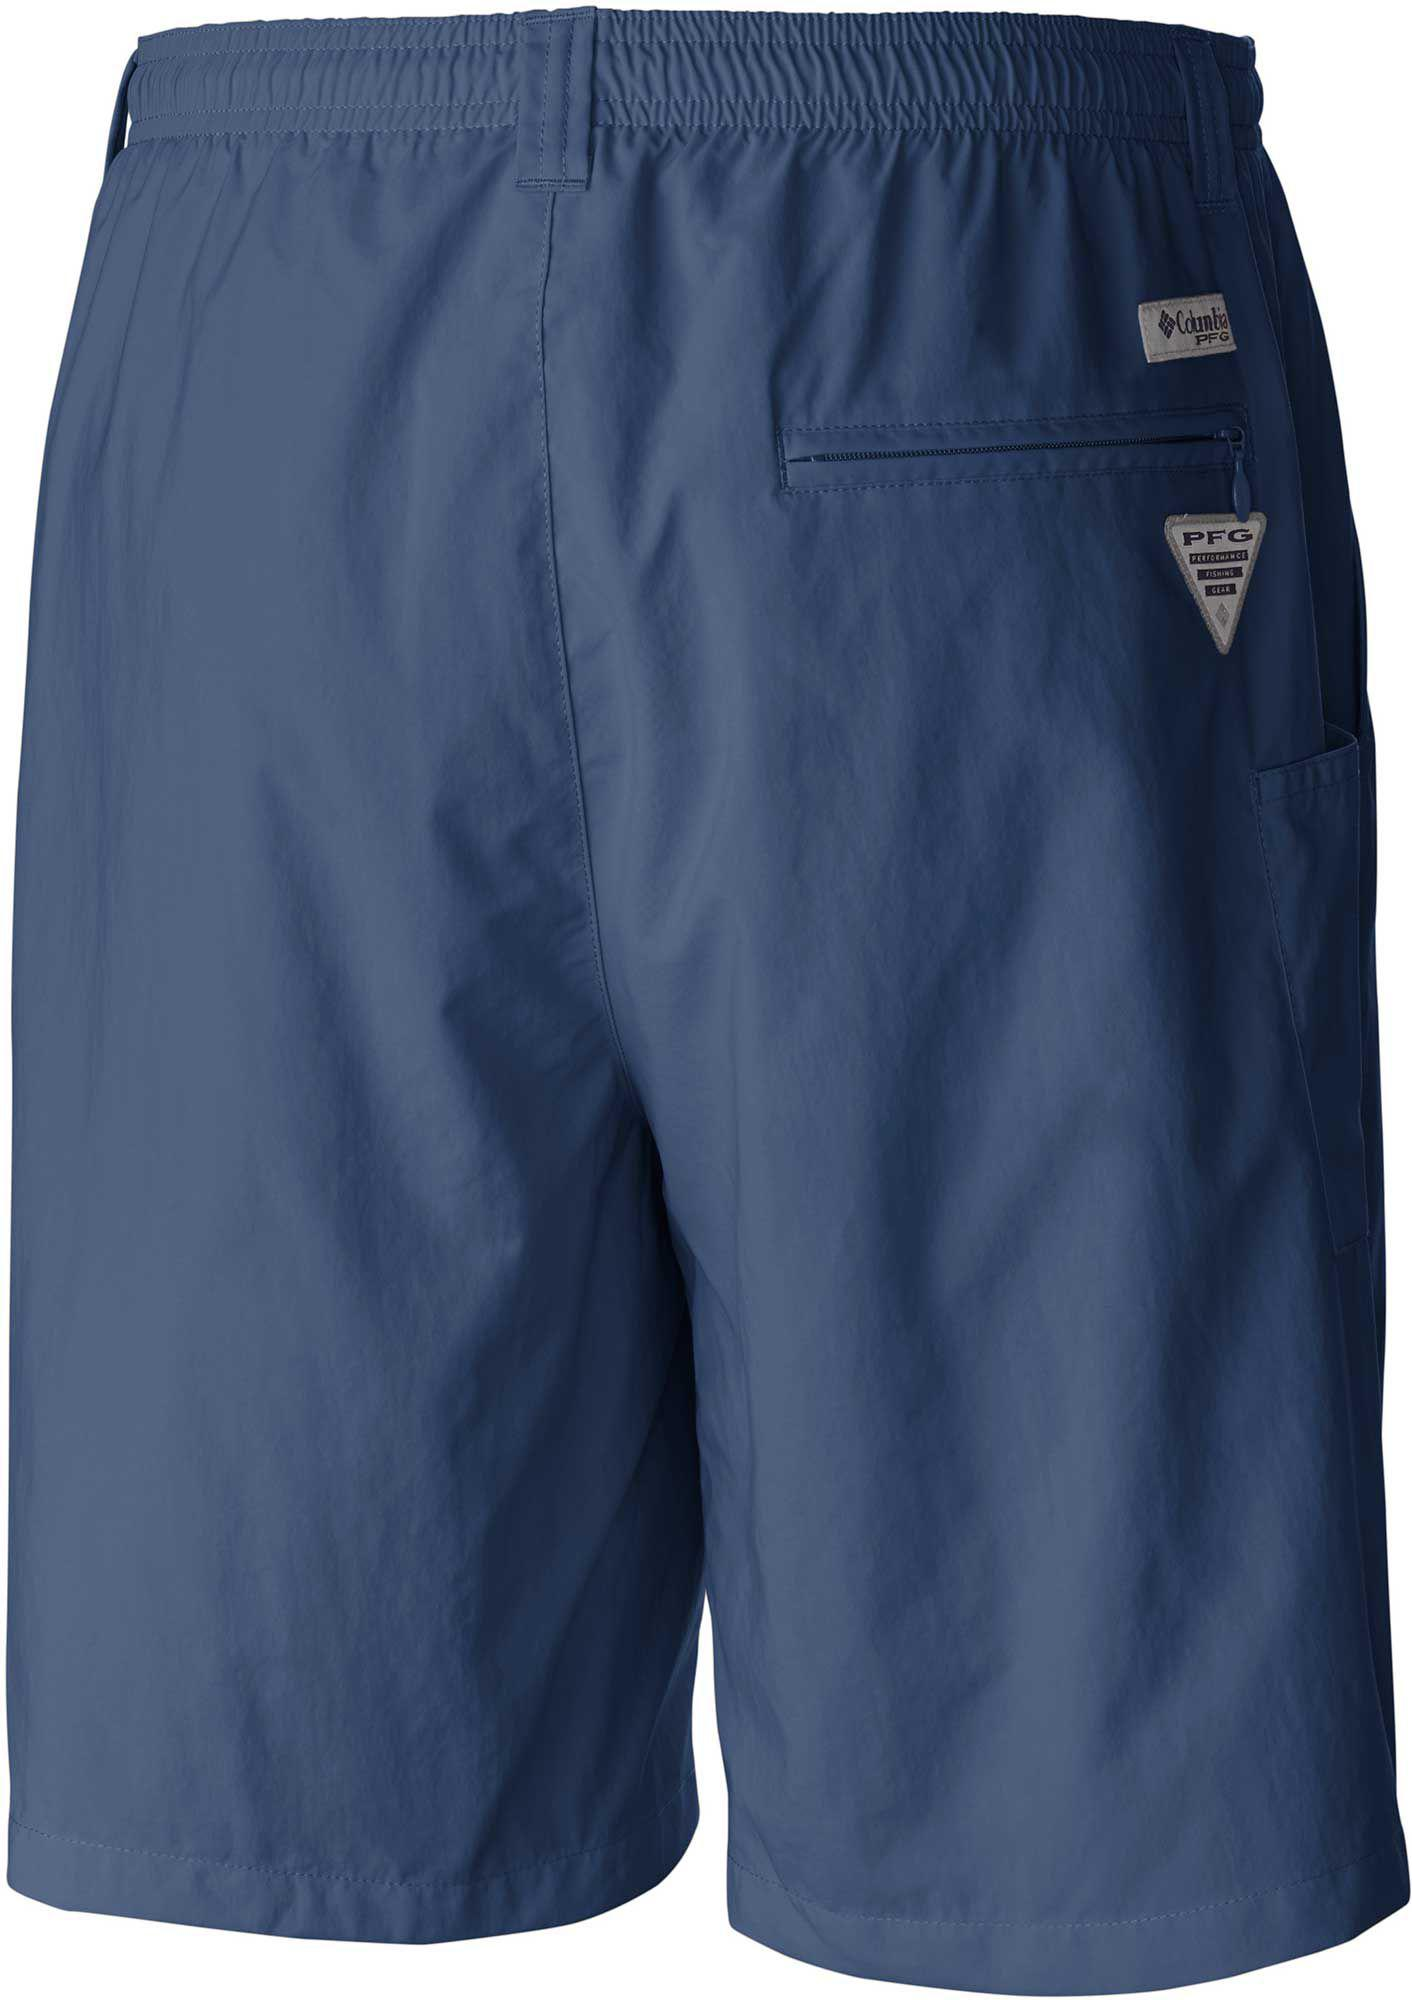 ca65446bd5 Lyst - Columbia Pfg Backcast Iii Water Trunks in Blue for Men